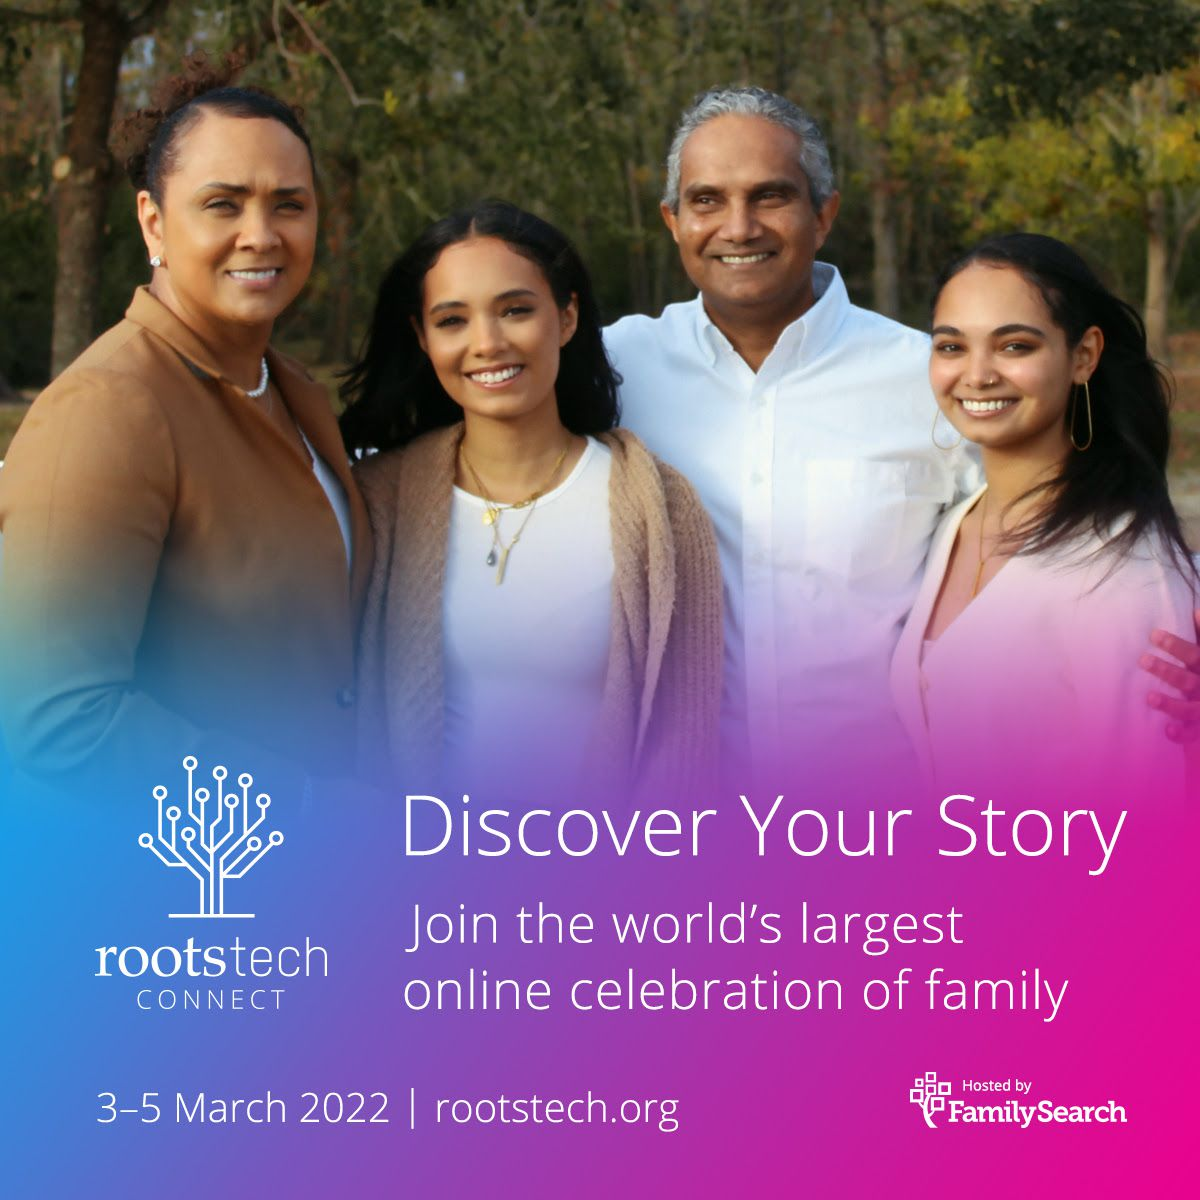 FamilySearch announced that RootsTech 2022 will take place March 3-5.